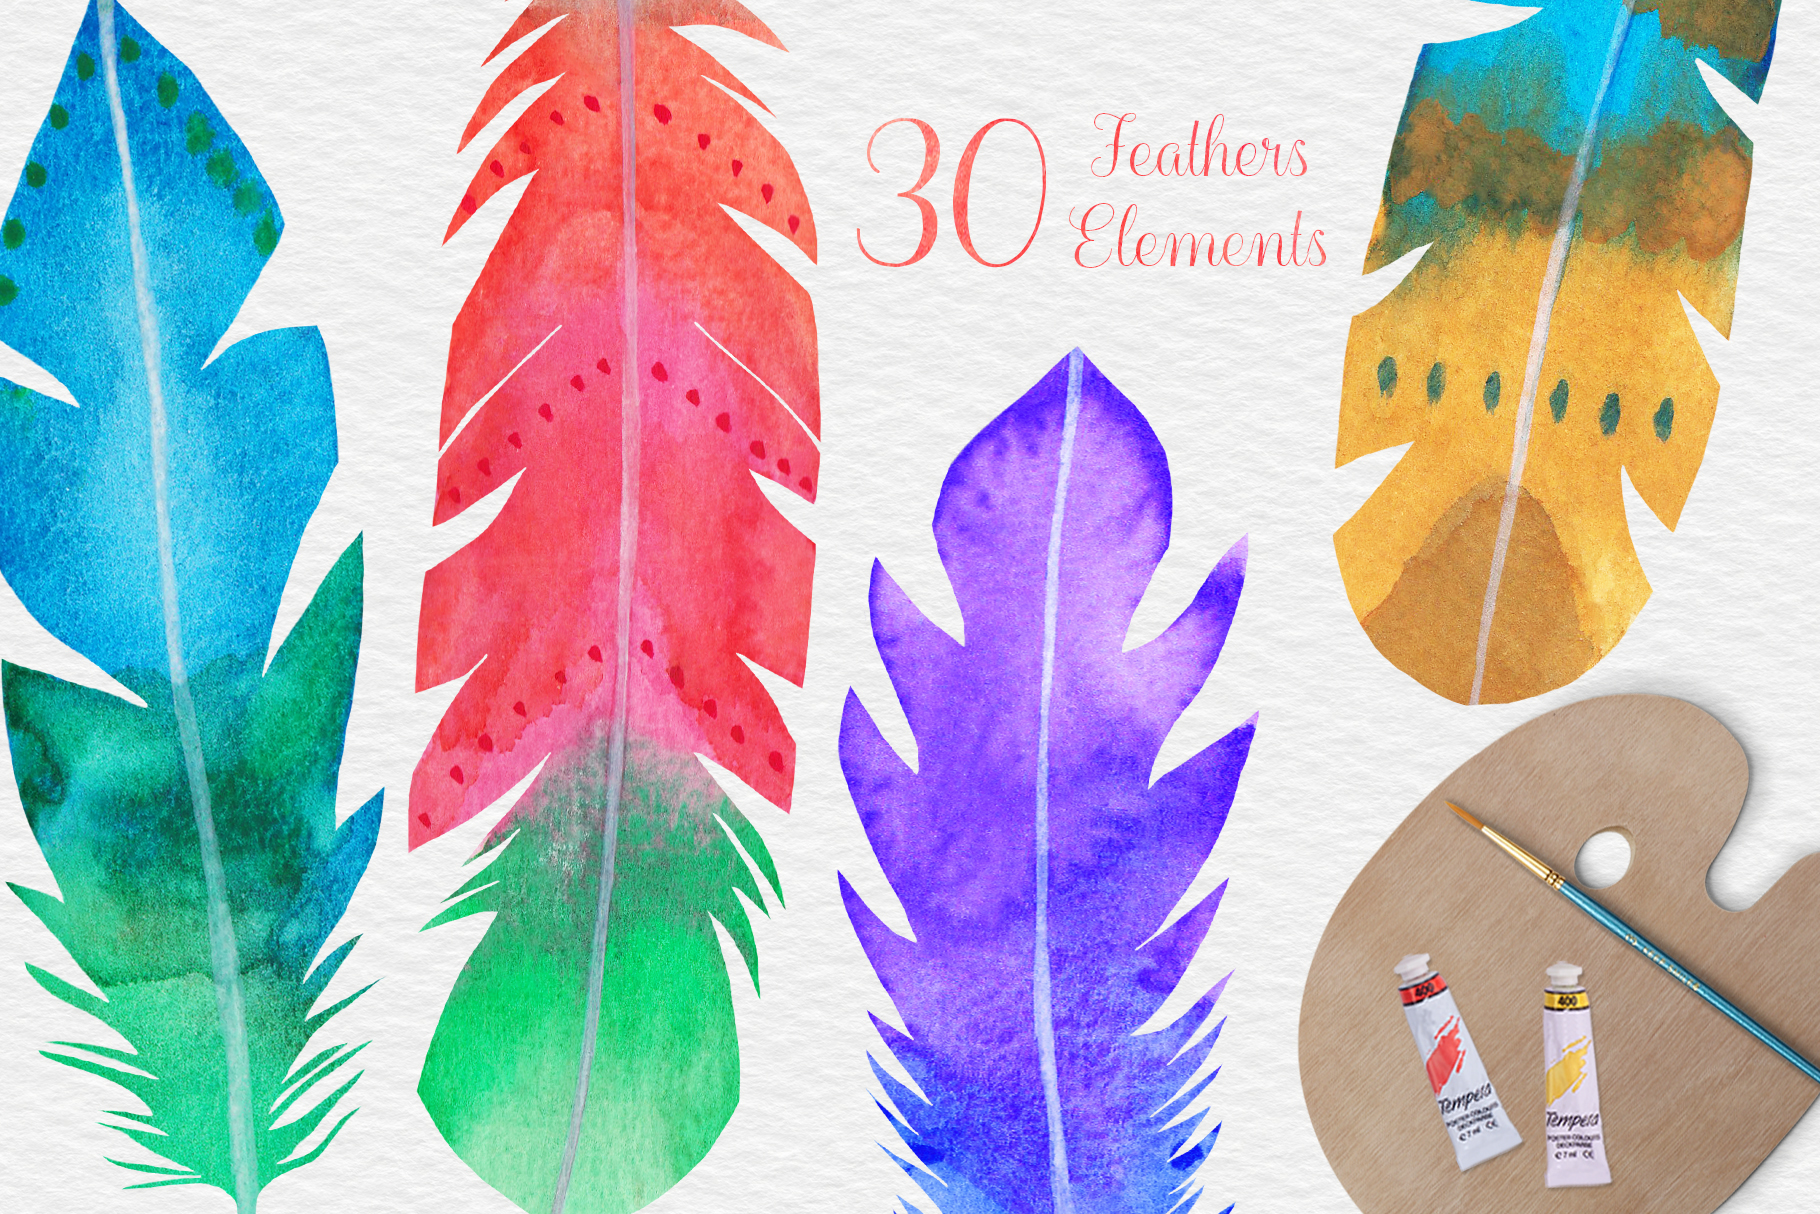 Watercolor Feathers Clipart, Watercolor Feather Illustration example image 3